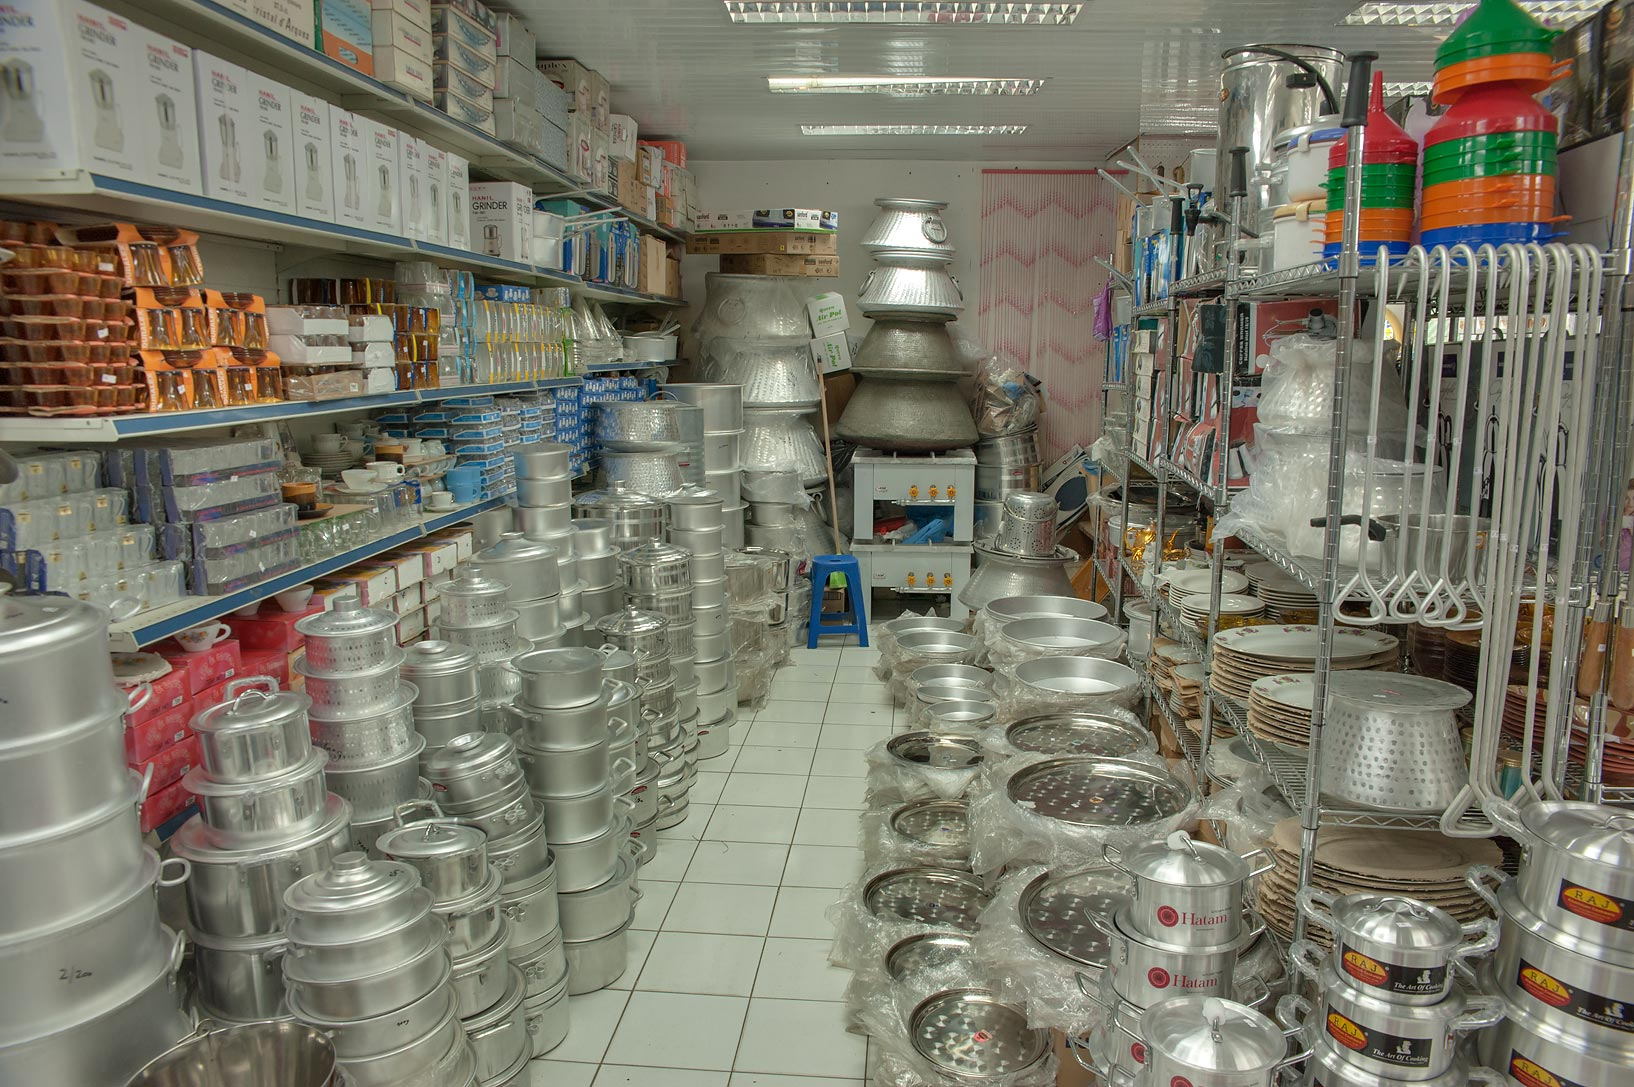 Aluminium kitchenware shop in Souq Waqif (Old Market). Doha, Qatar